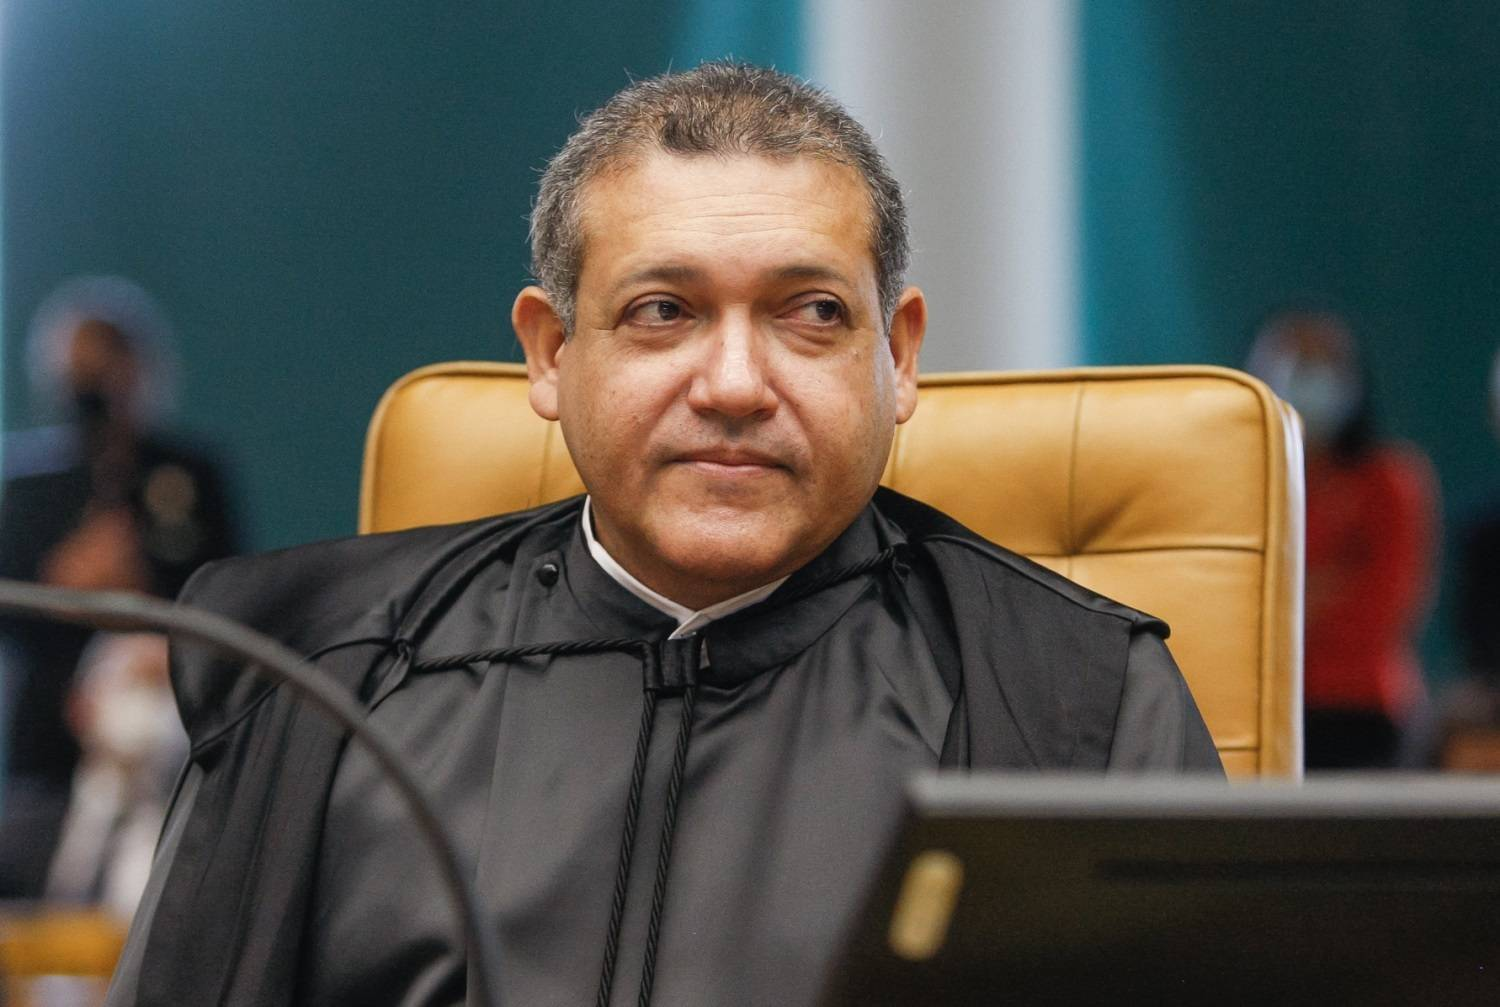 Nunes Marques, do STF, herda mais de 1.500 processos de Celso de Mello